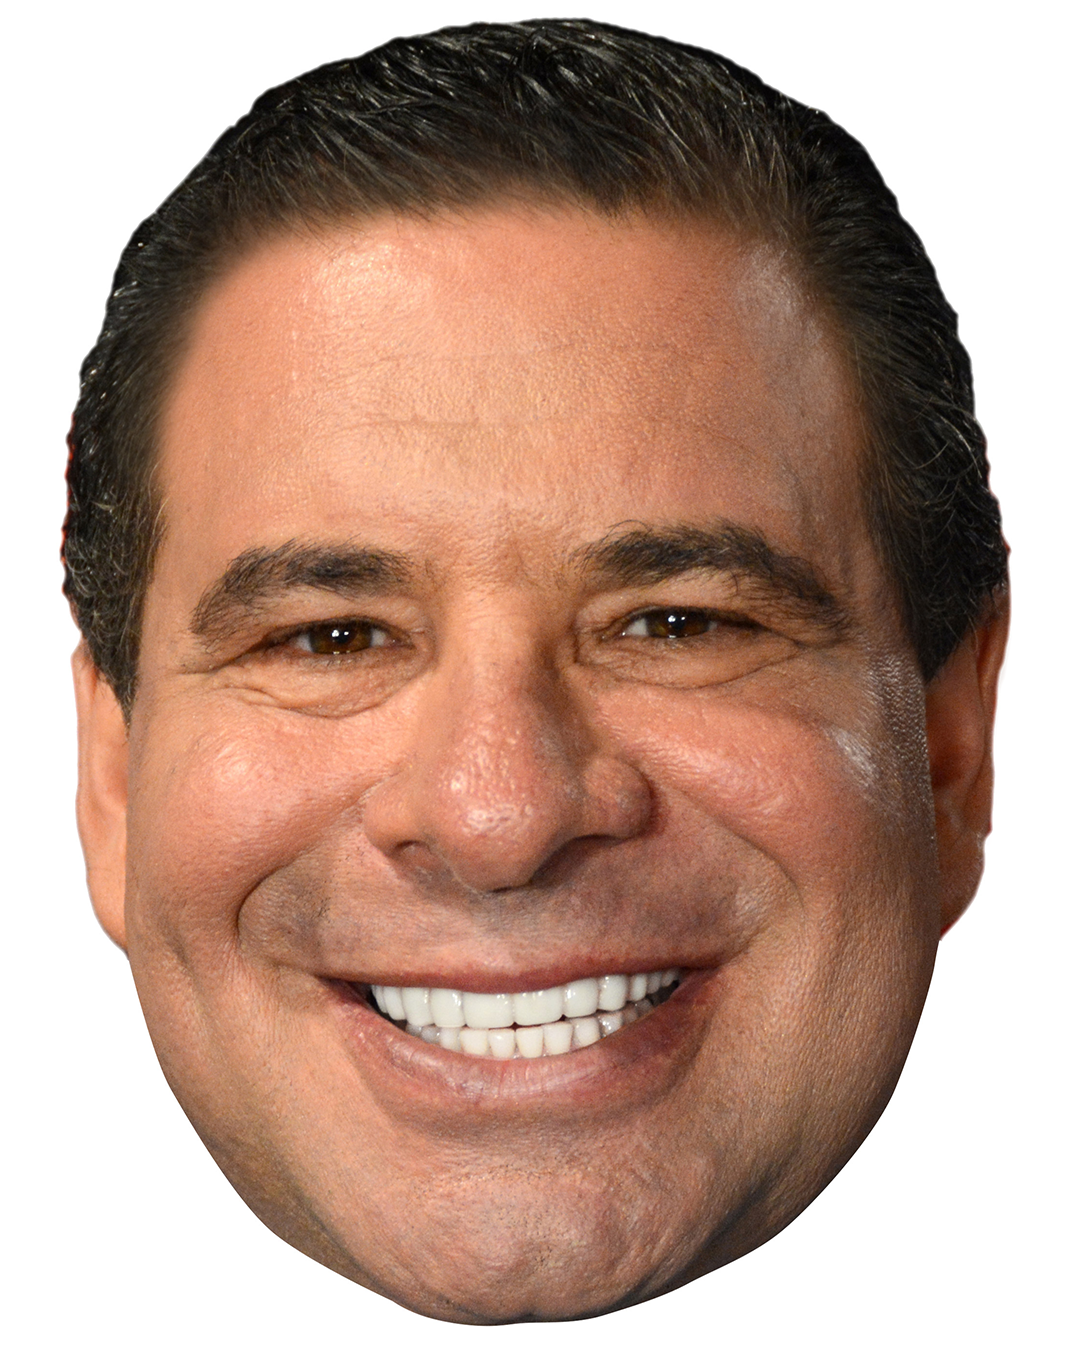 Phil Swift Takes On The No Shave November Challenge Stay Glued To Watch Phil S Beard Grow Noshavenovemeber Phil Swift Photoshop Battle Phil